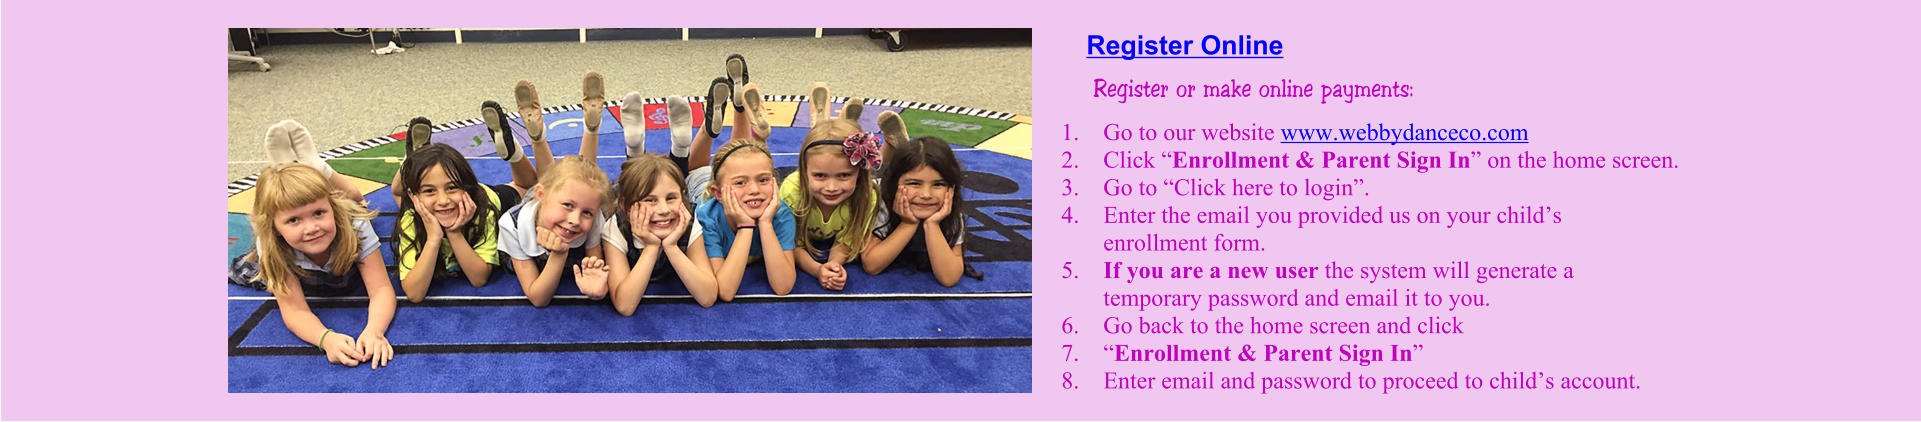 "Register or make online payments: 	1.	Go to our website www.webbydanceco.com 	2.	Click ""Enrollment & Parent Sign In"" on the home screen. 	3.	Go to ""Click here to login"". 	4.	Enter the email you provided us on your child's enrollment form. 	5.	If you are a new user the system will generate a temporary password and email it to you. 	6.	Go back to the home screen and click  	7.	""Enrollment & Parent Sign In"" 	8.	Enter email and password to proceed to child's account.  Register Online"